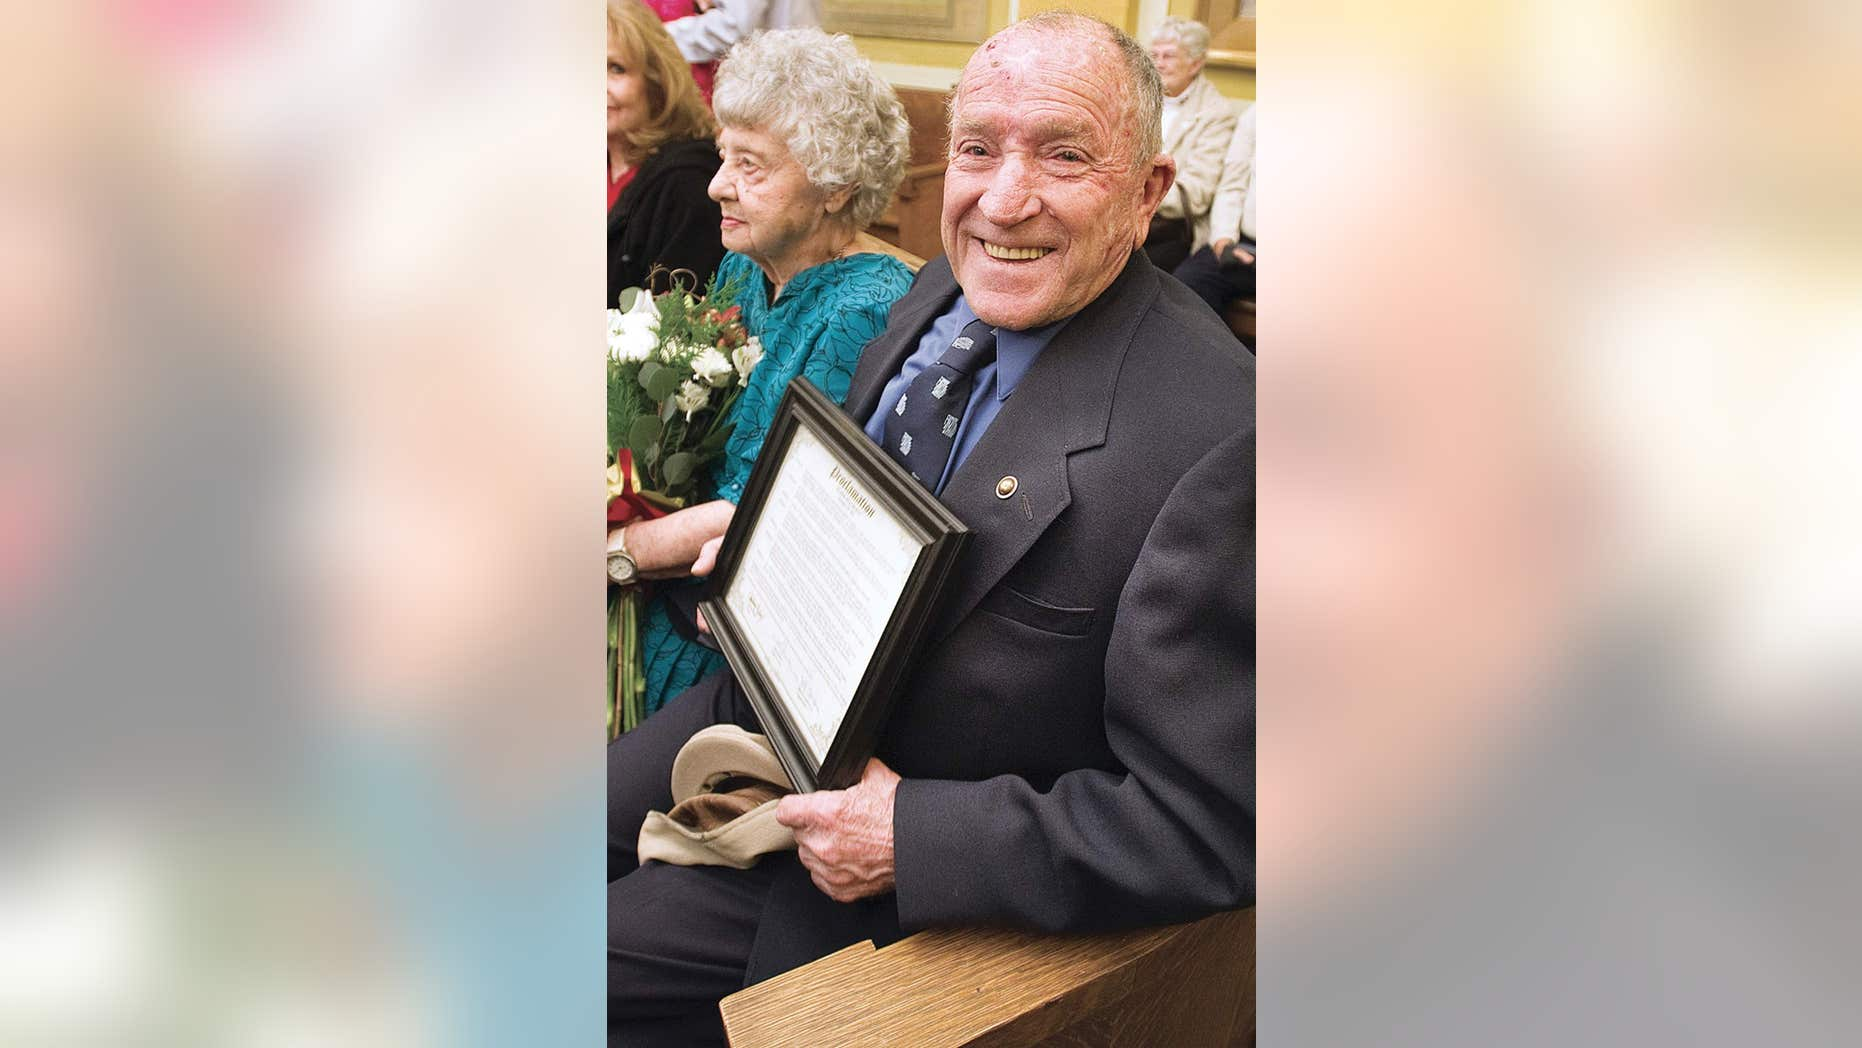 """In this 2012 photo, Elmer Melchi smiles as he sits with his wife, June, after commissioners proclaimed it """"Elmer Melchi Day."""""""